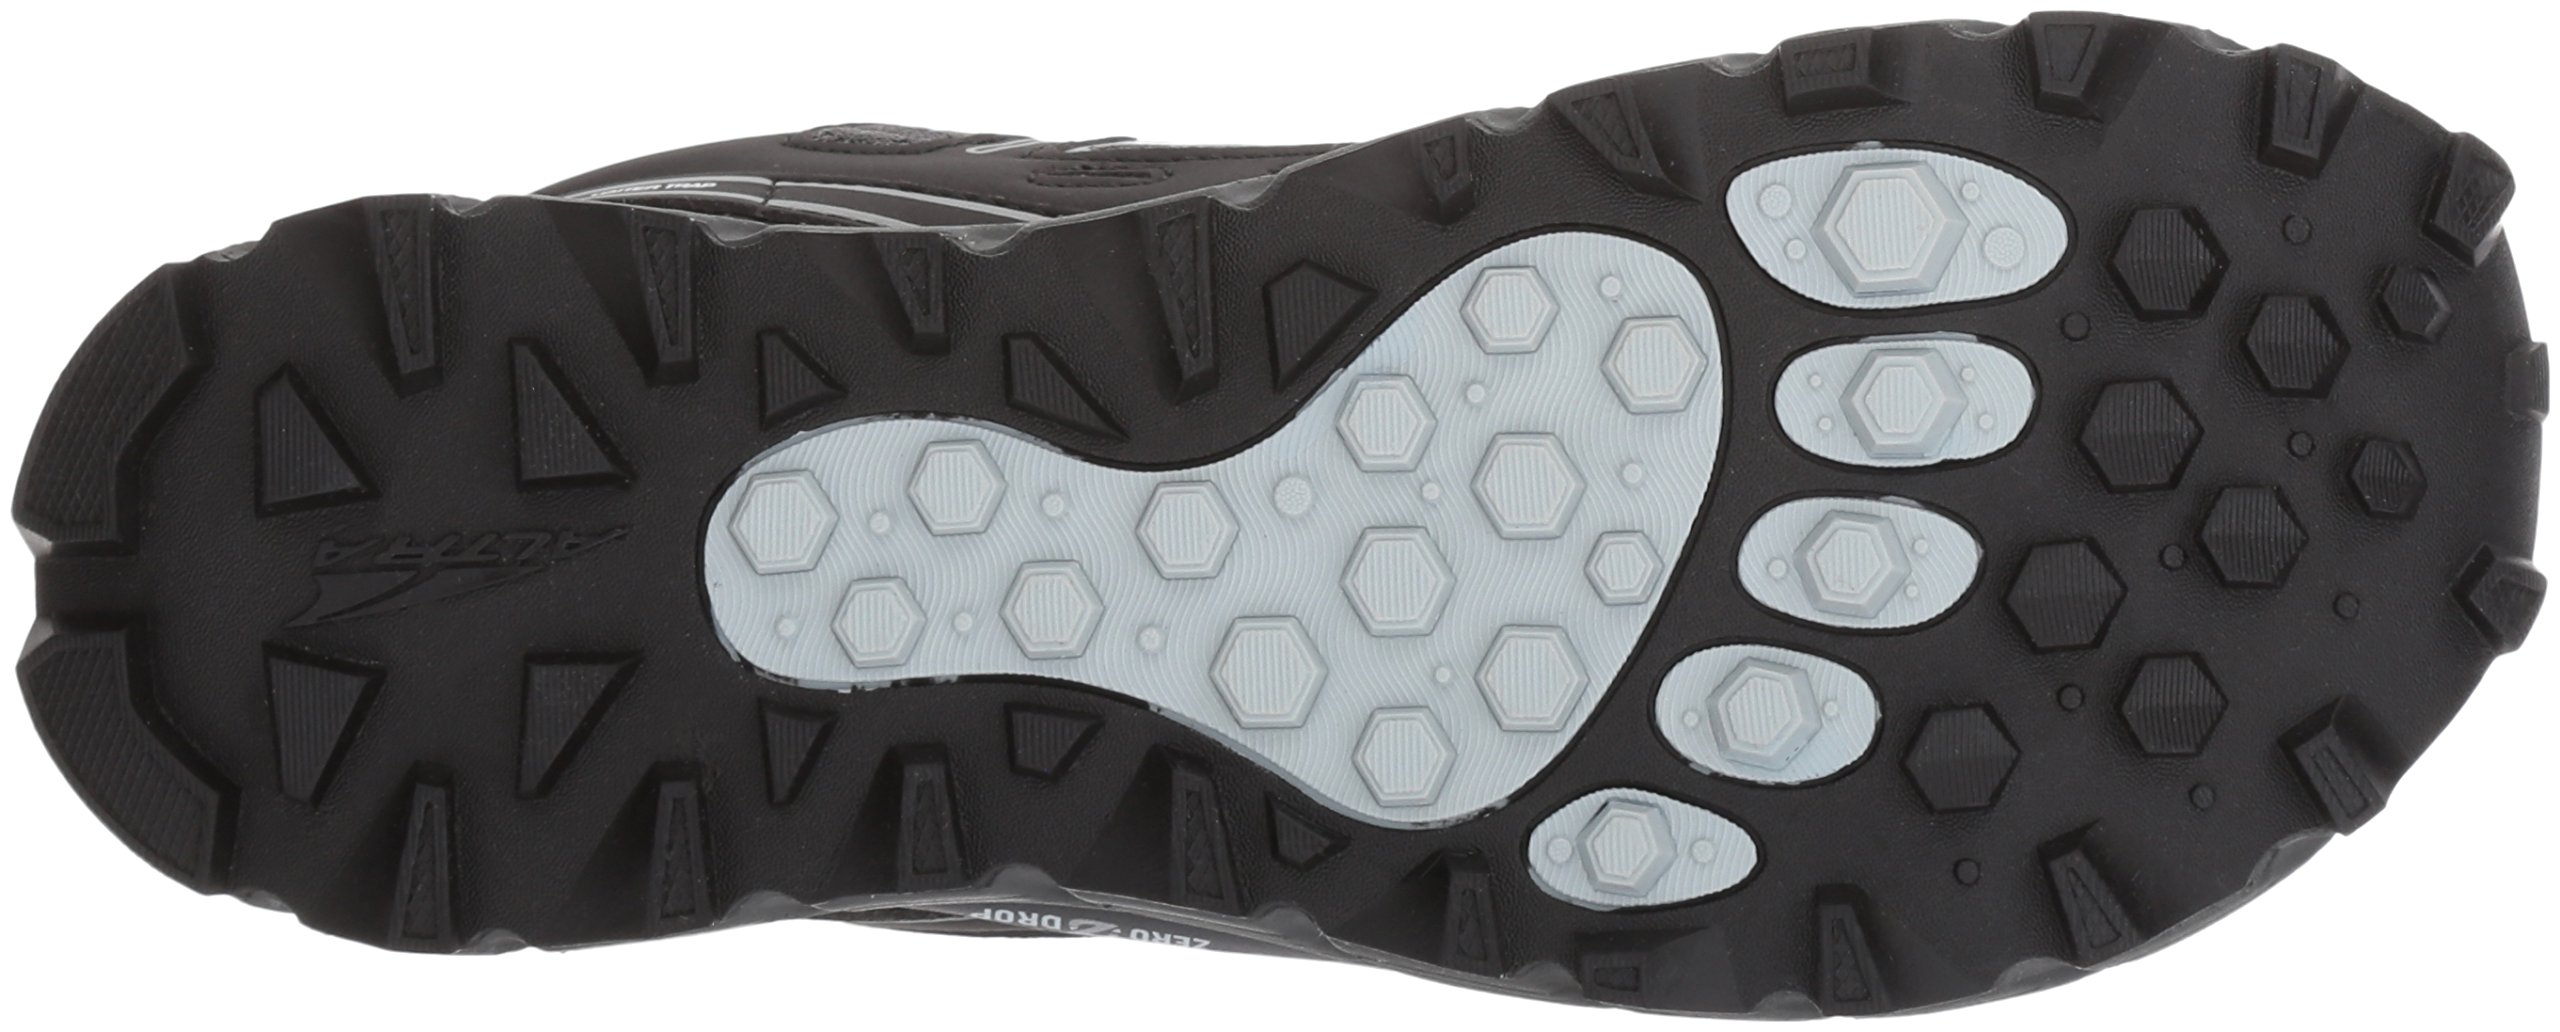 Altra Women's Lone Peak 3.5 Running Shoe, Black, 8.5 B US by Altra (Image #3)